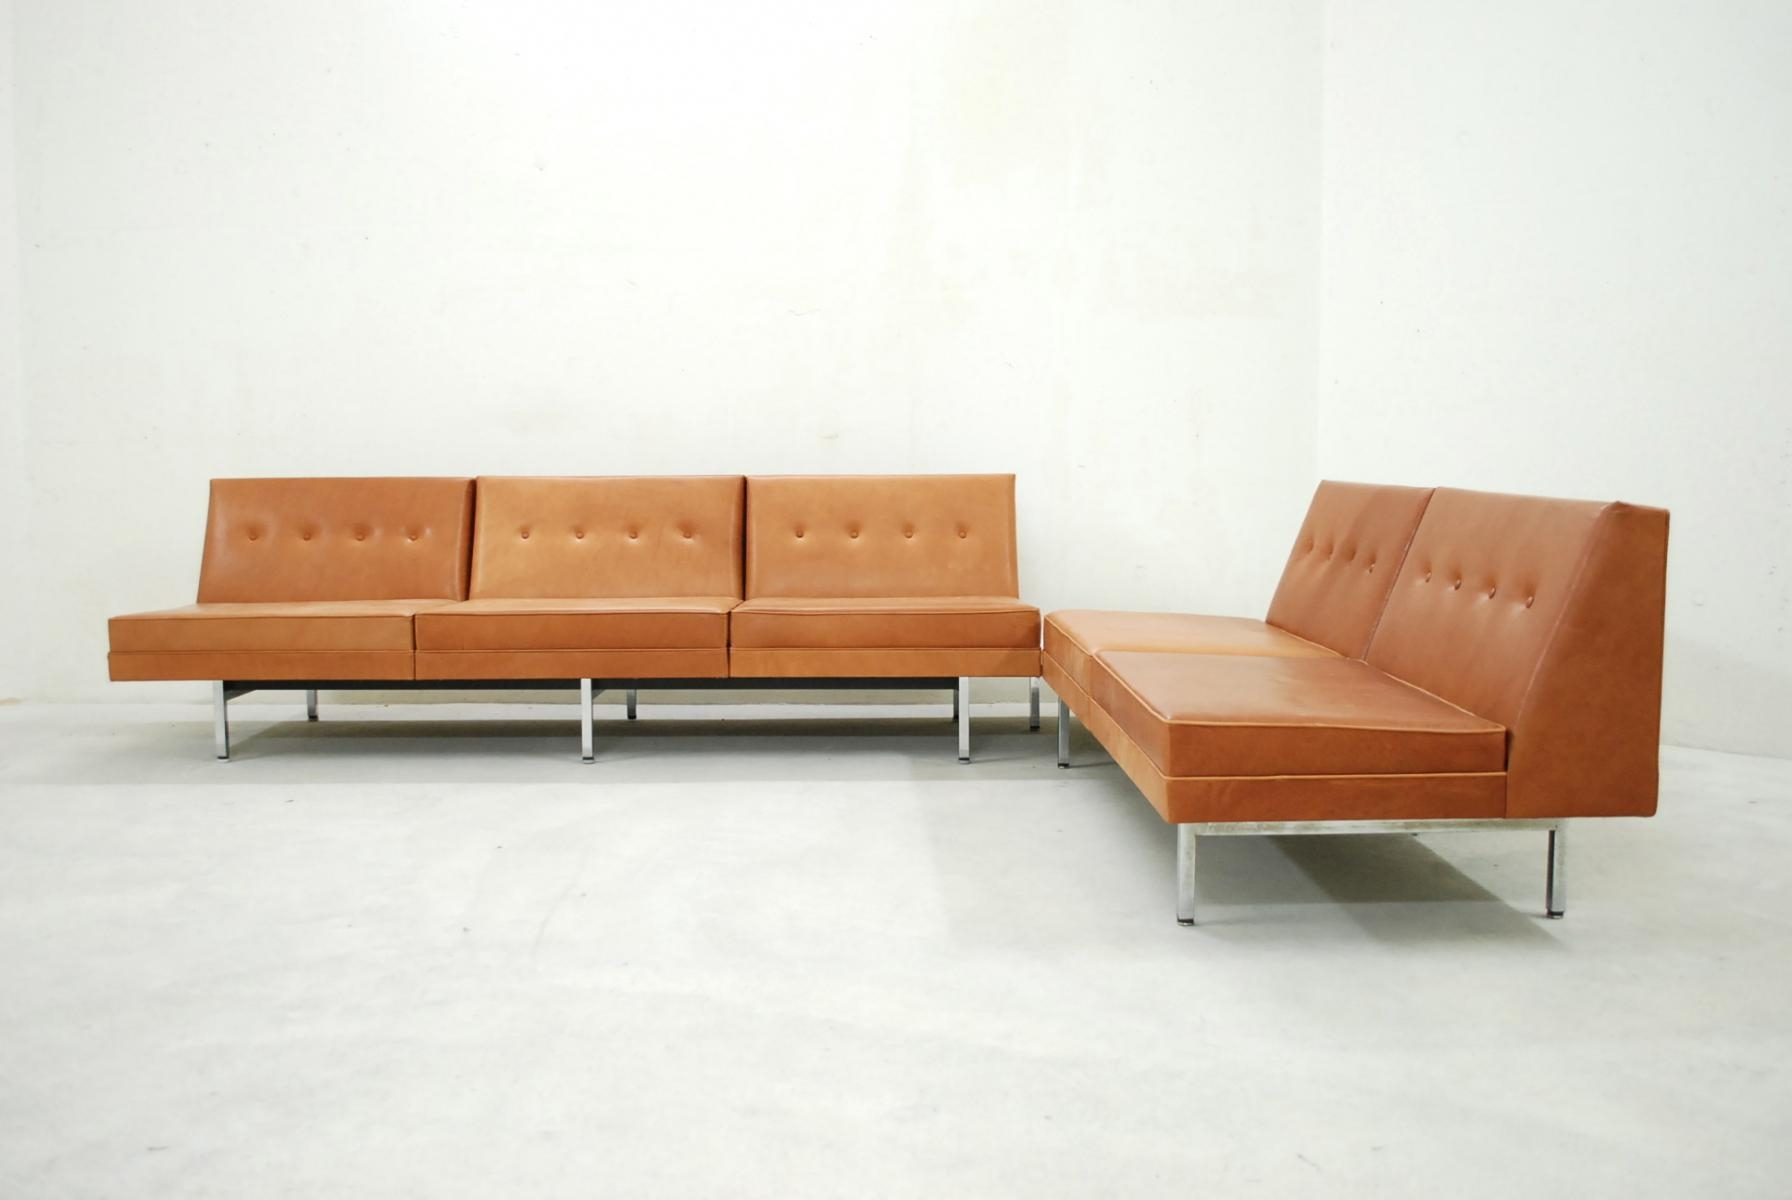 Cognac Leather Modular Sofa Setgeorge Nelson For Herman Miller Inside George Nelson Sofas (Image 1 of 20)